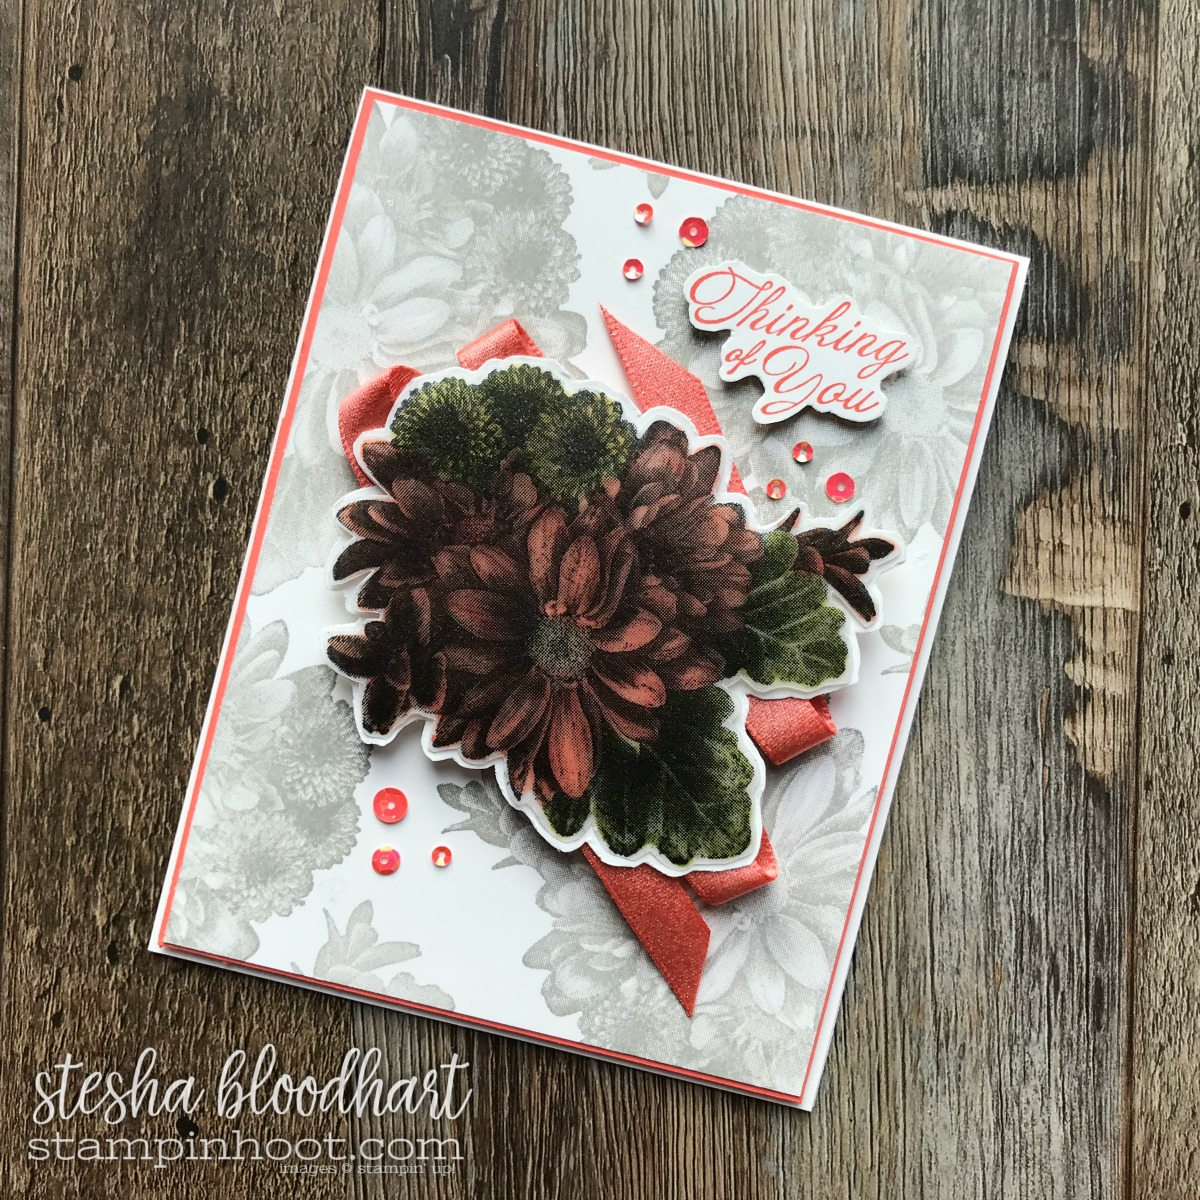 Heartfelt Blooms 2018 Sale-a-Bration Set Earned Free with $50 Purchase, Buy Online at Stampin' Hoot! Stesha Bloodhart #stampinhoot #steshabloodhart